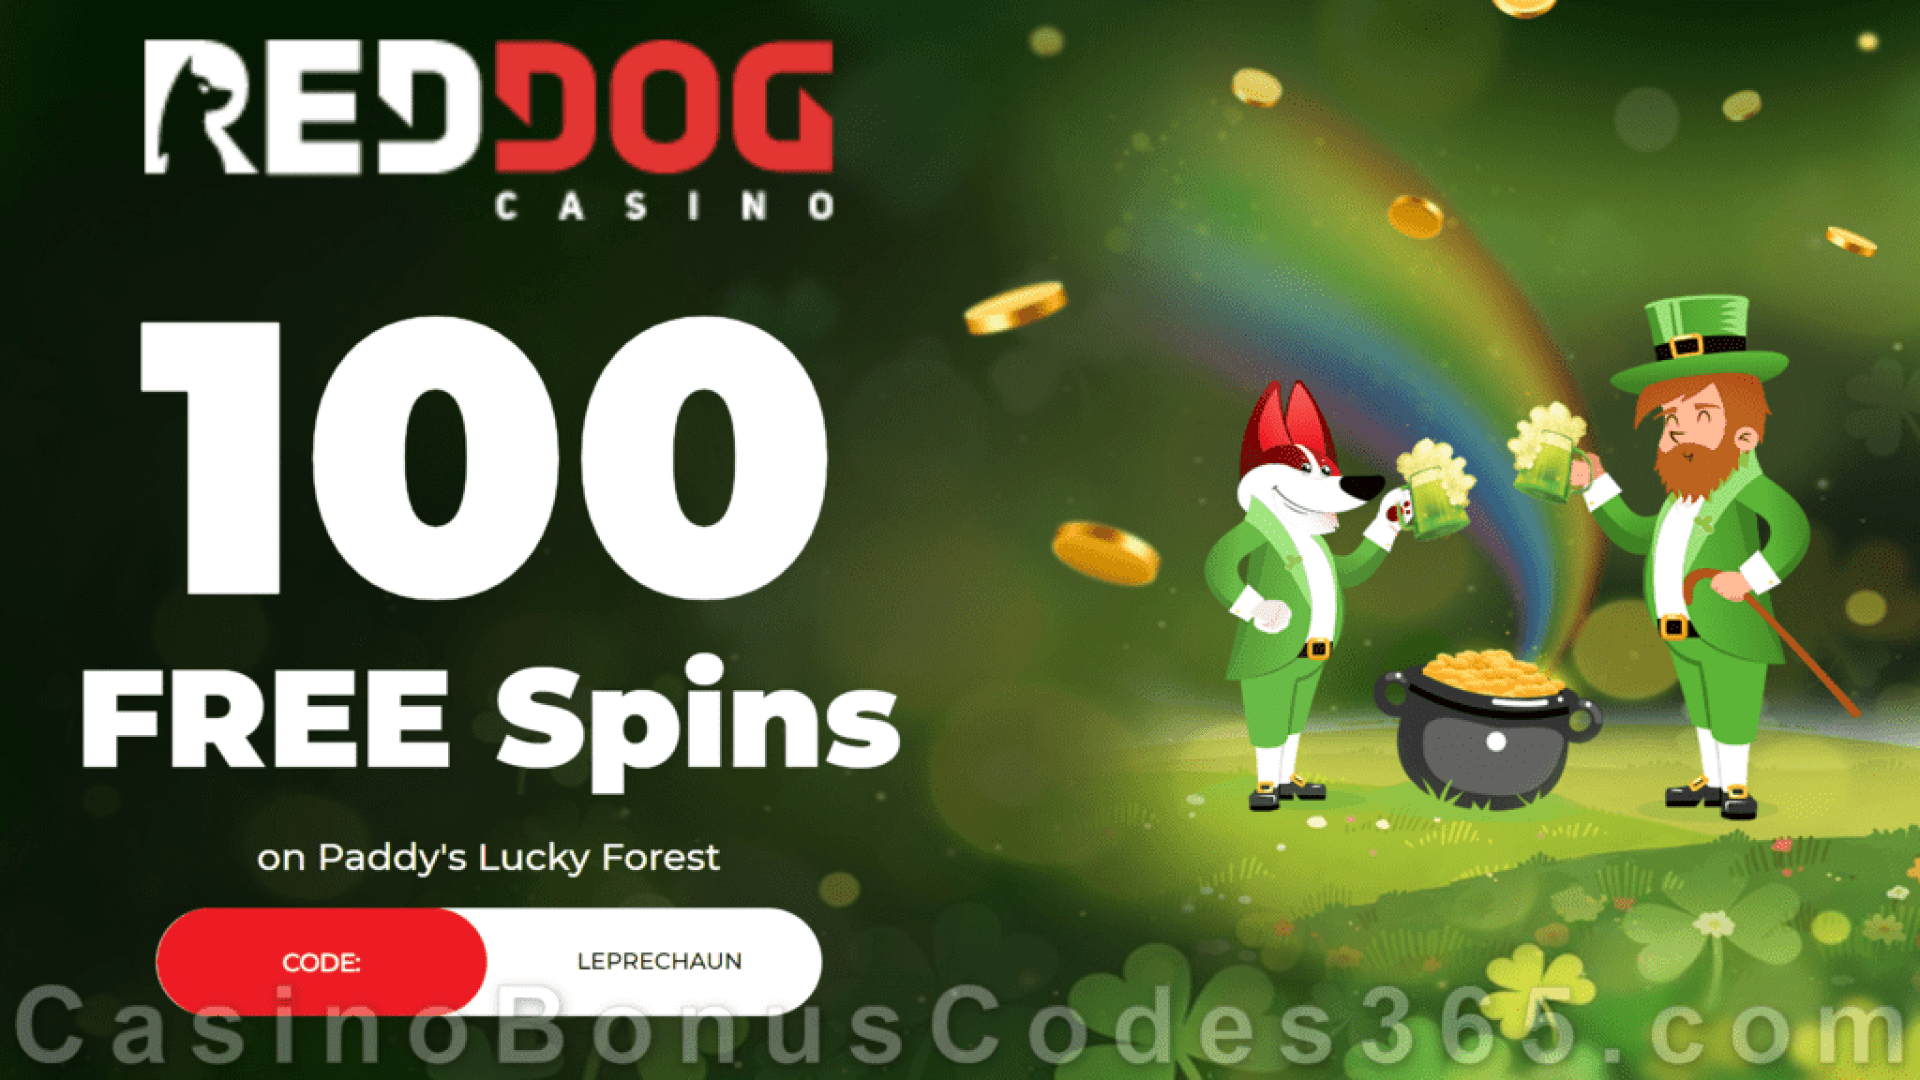 Red Dog Casino 100 FREE Spins on Paddy's Lucky Forest Special Deposit Offer